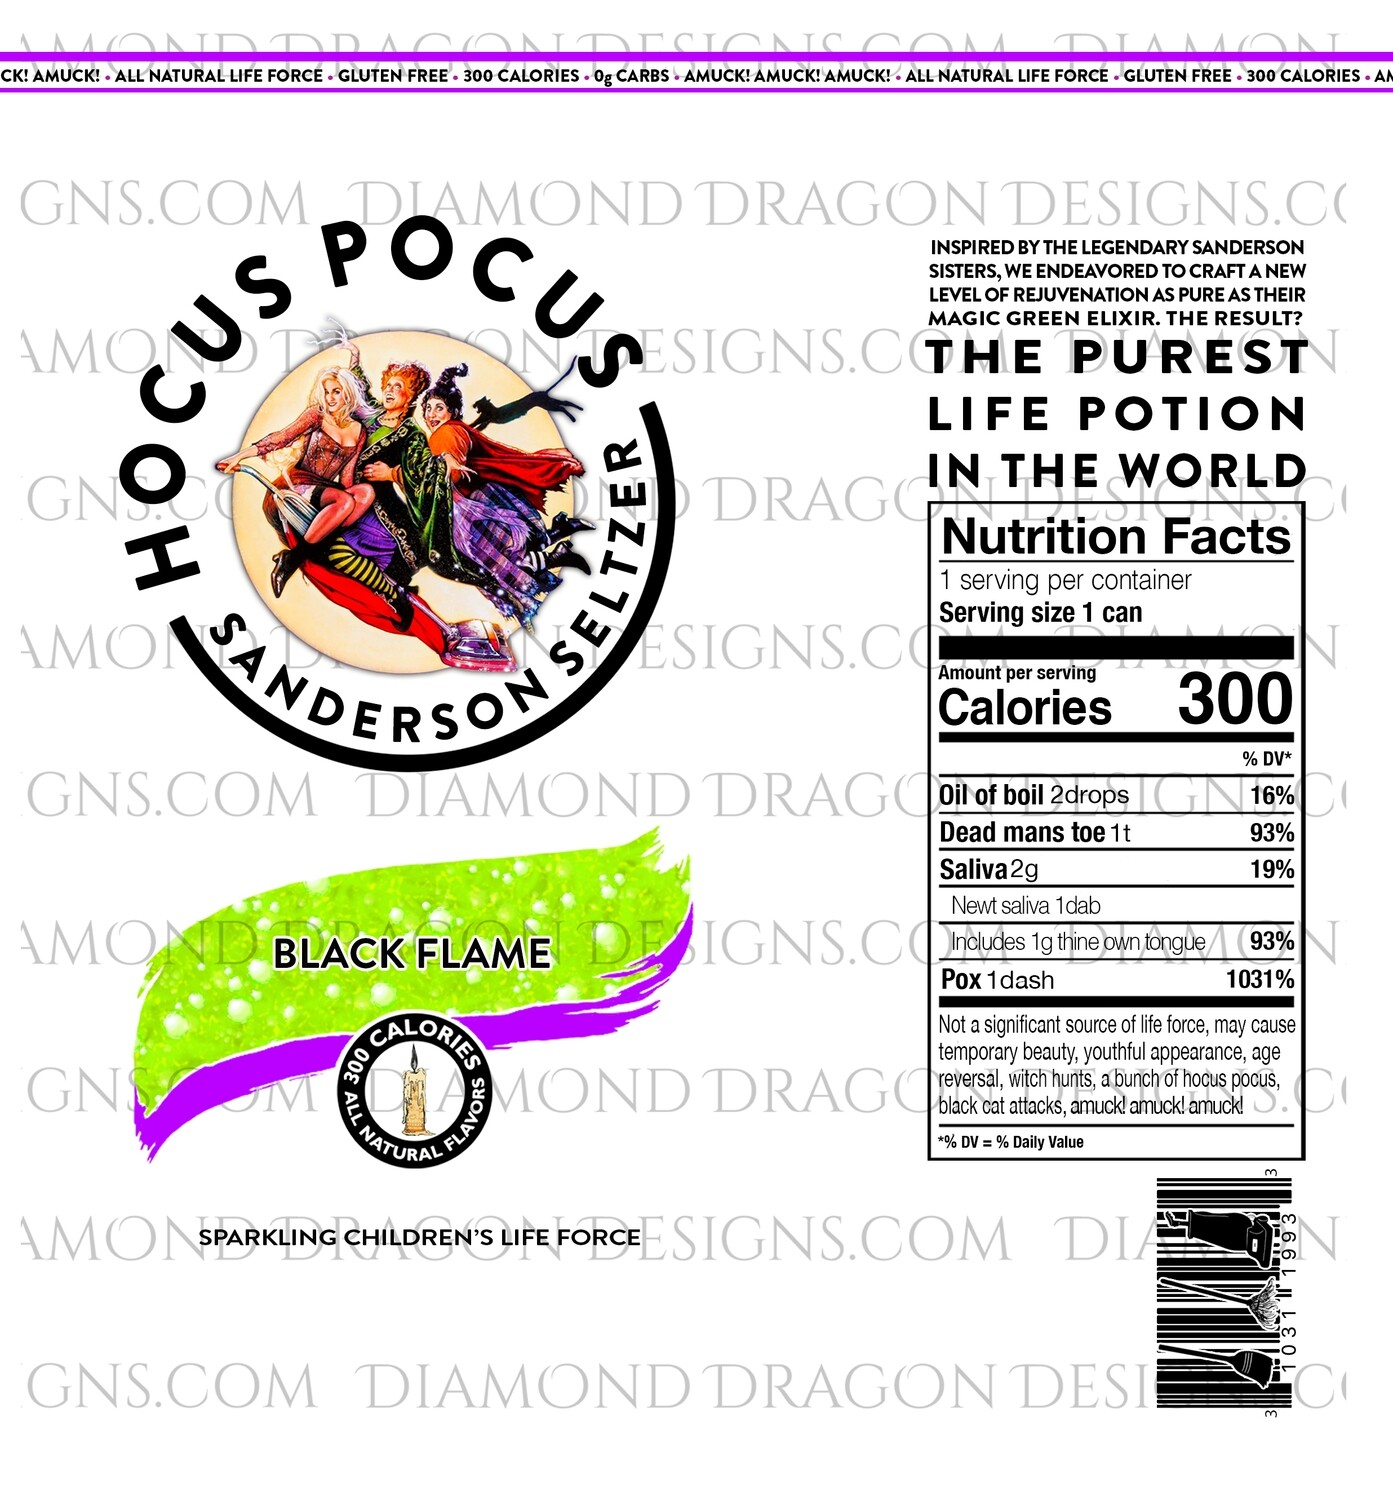 Halloween - Hocus Pocus, Sanderson Sisters, Hard Seltzer, Green, Super Realistic Claw Dupe, 3 Files, Digital Image